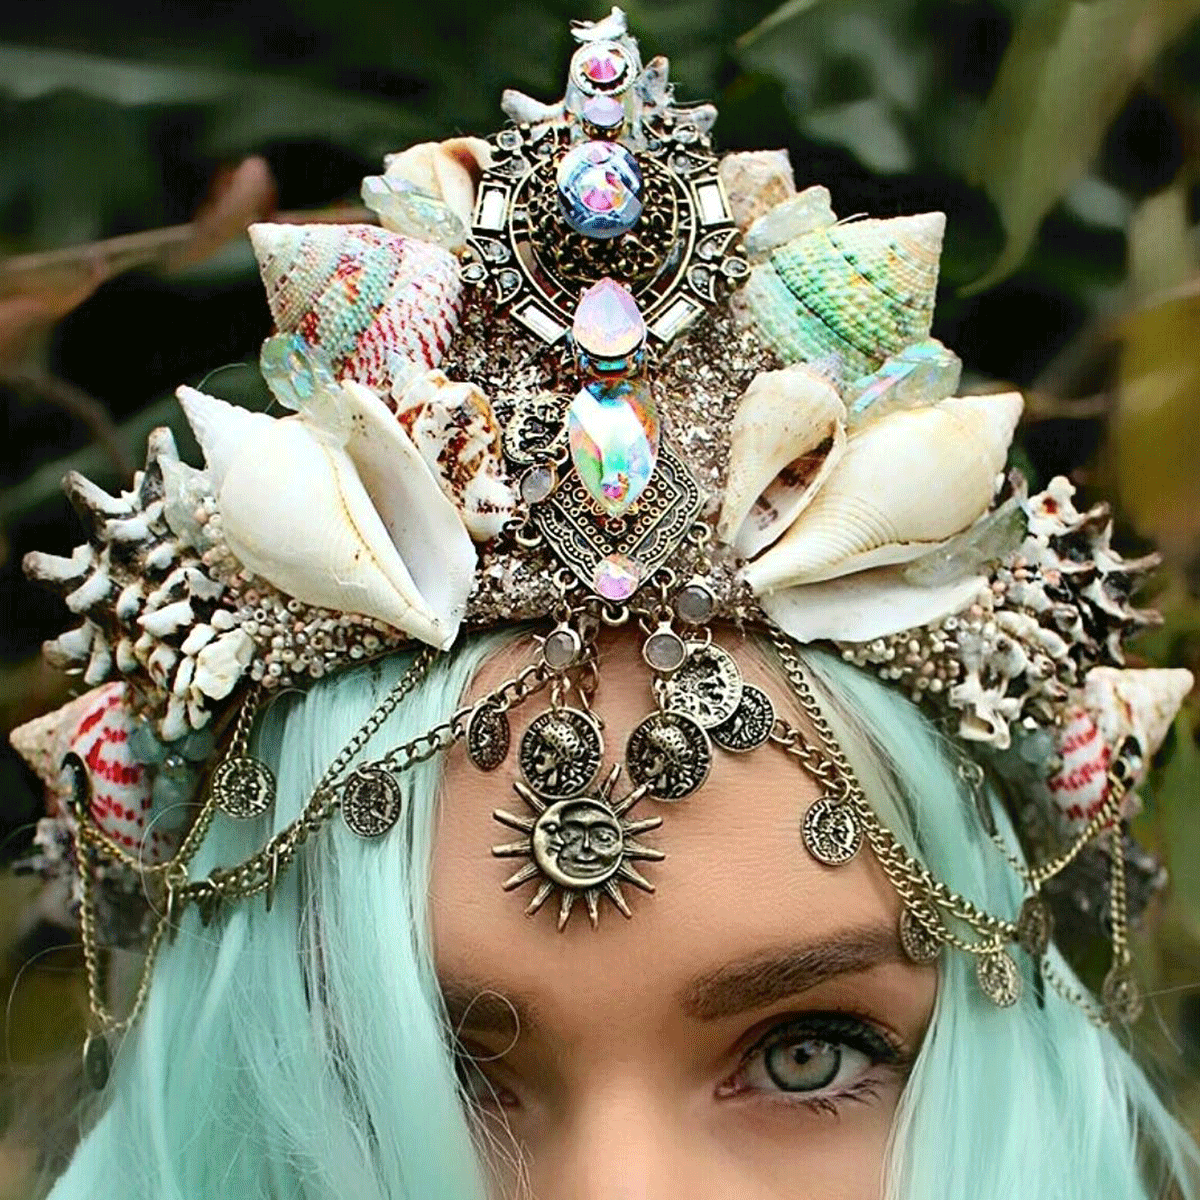 mermaidcrown 2